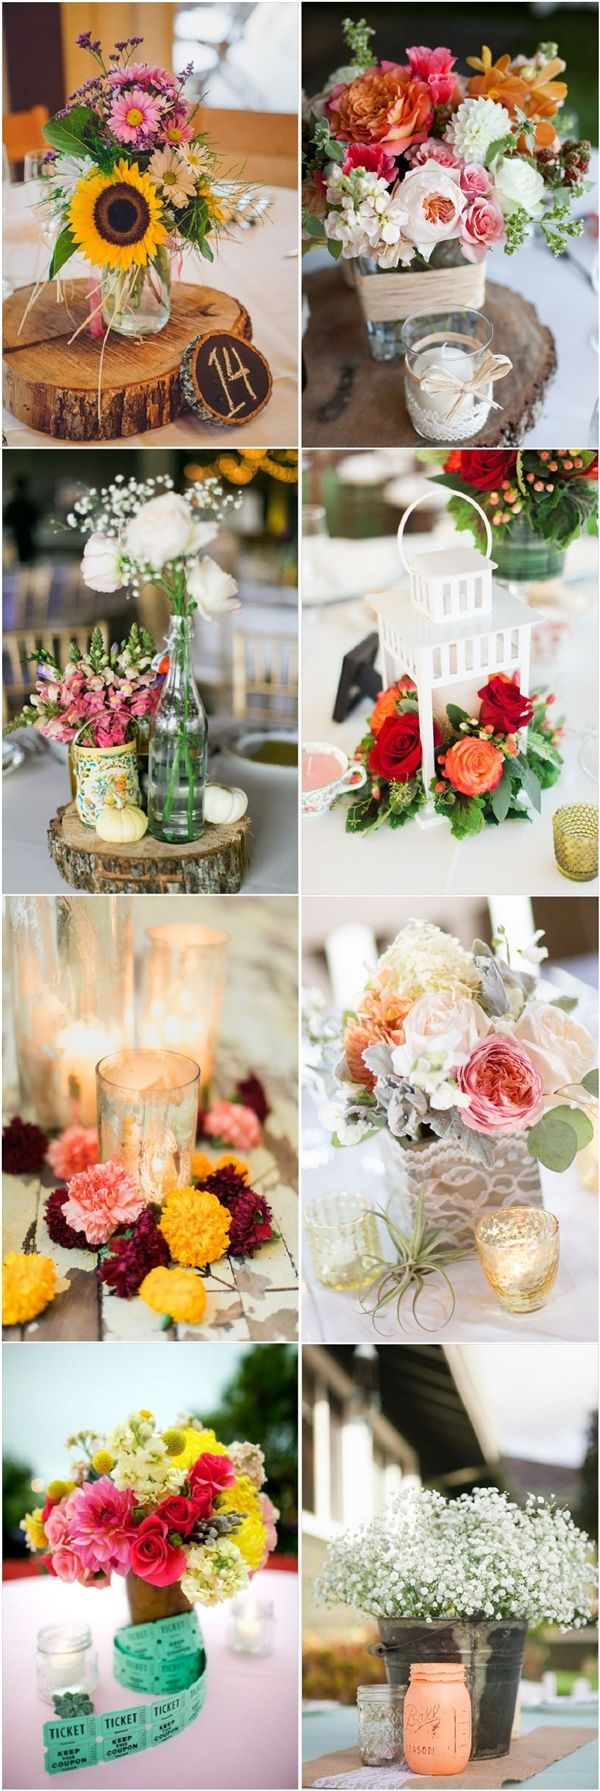 chic rustic wedding centerpiece decor ideas